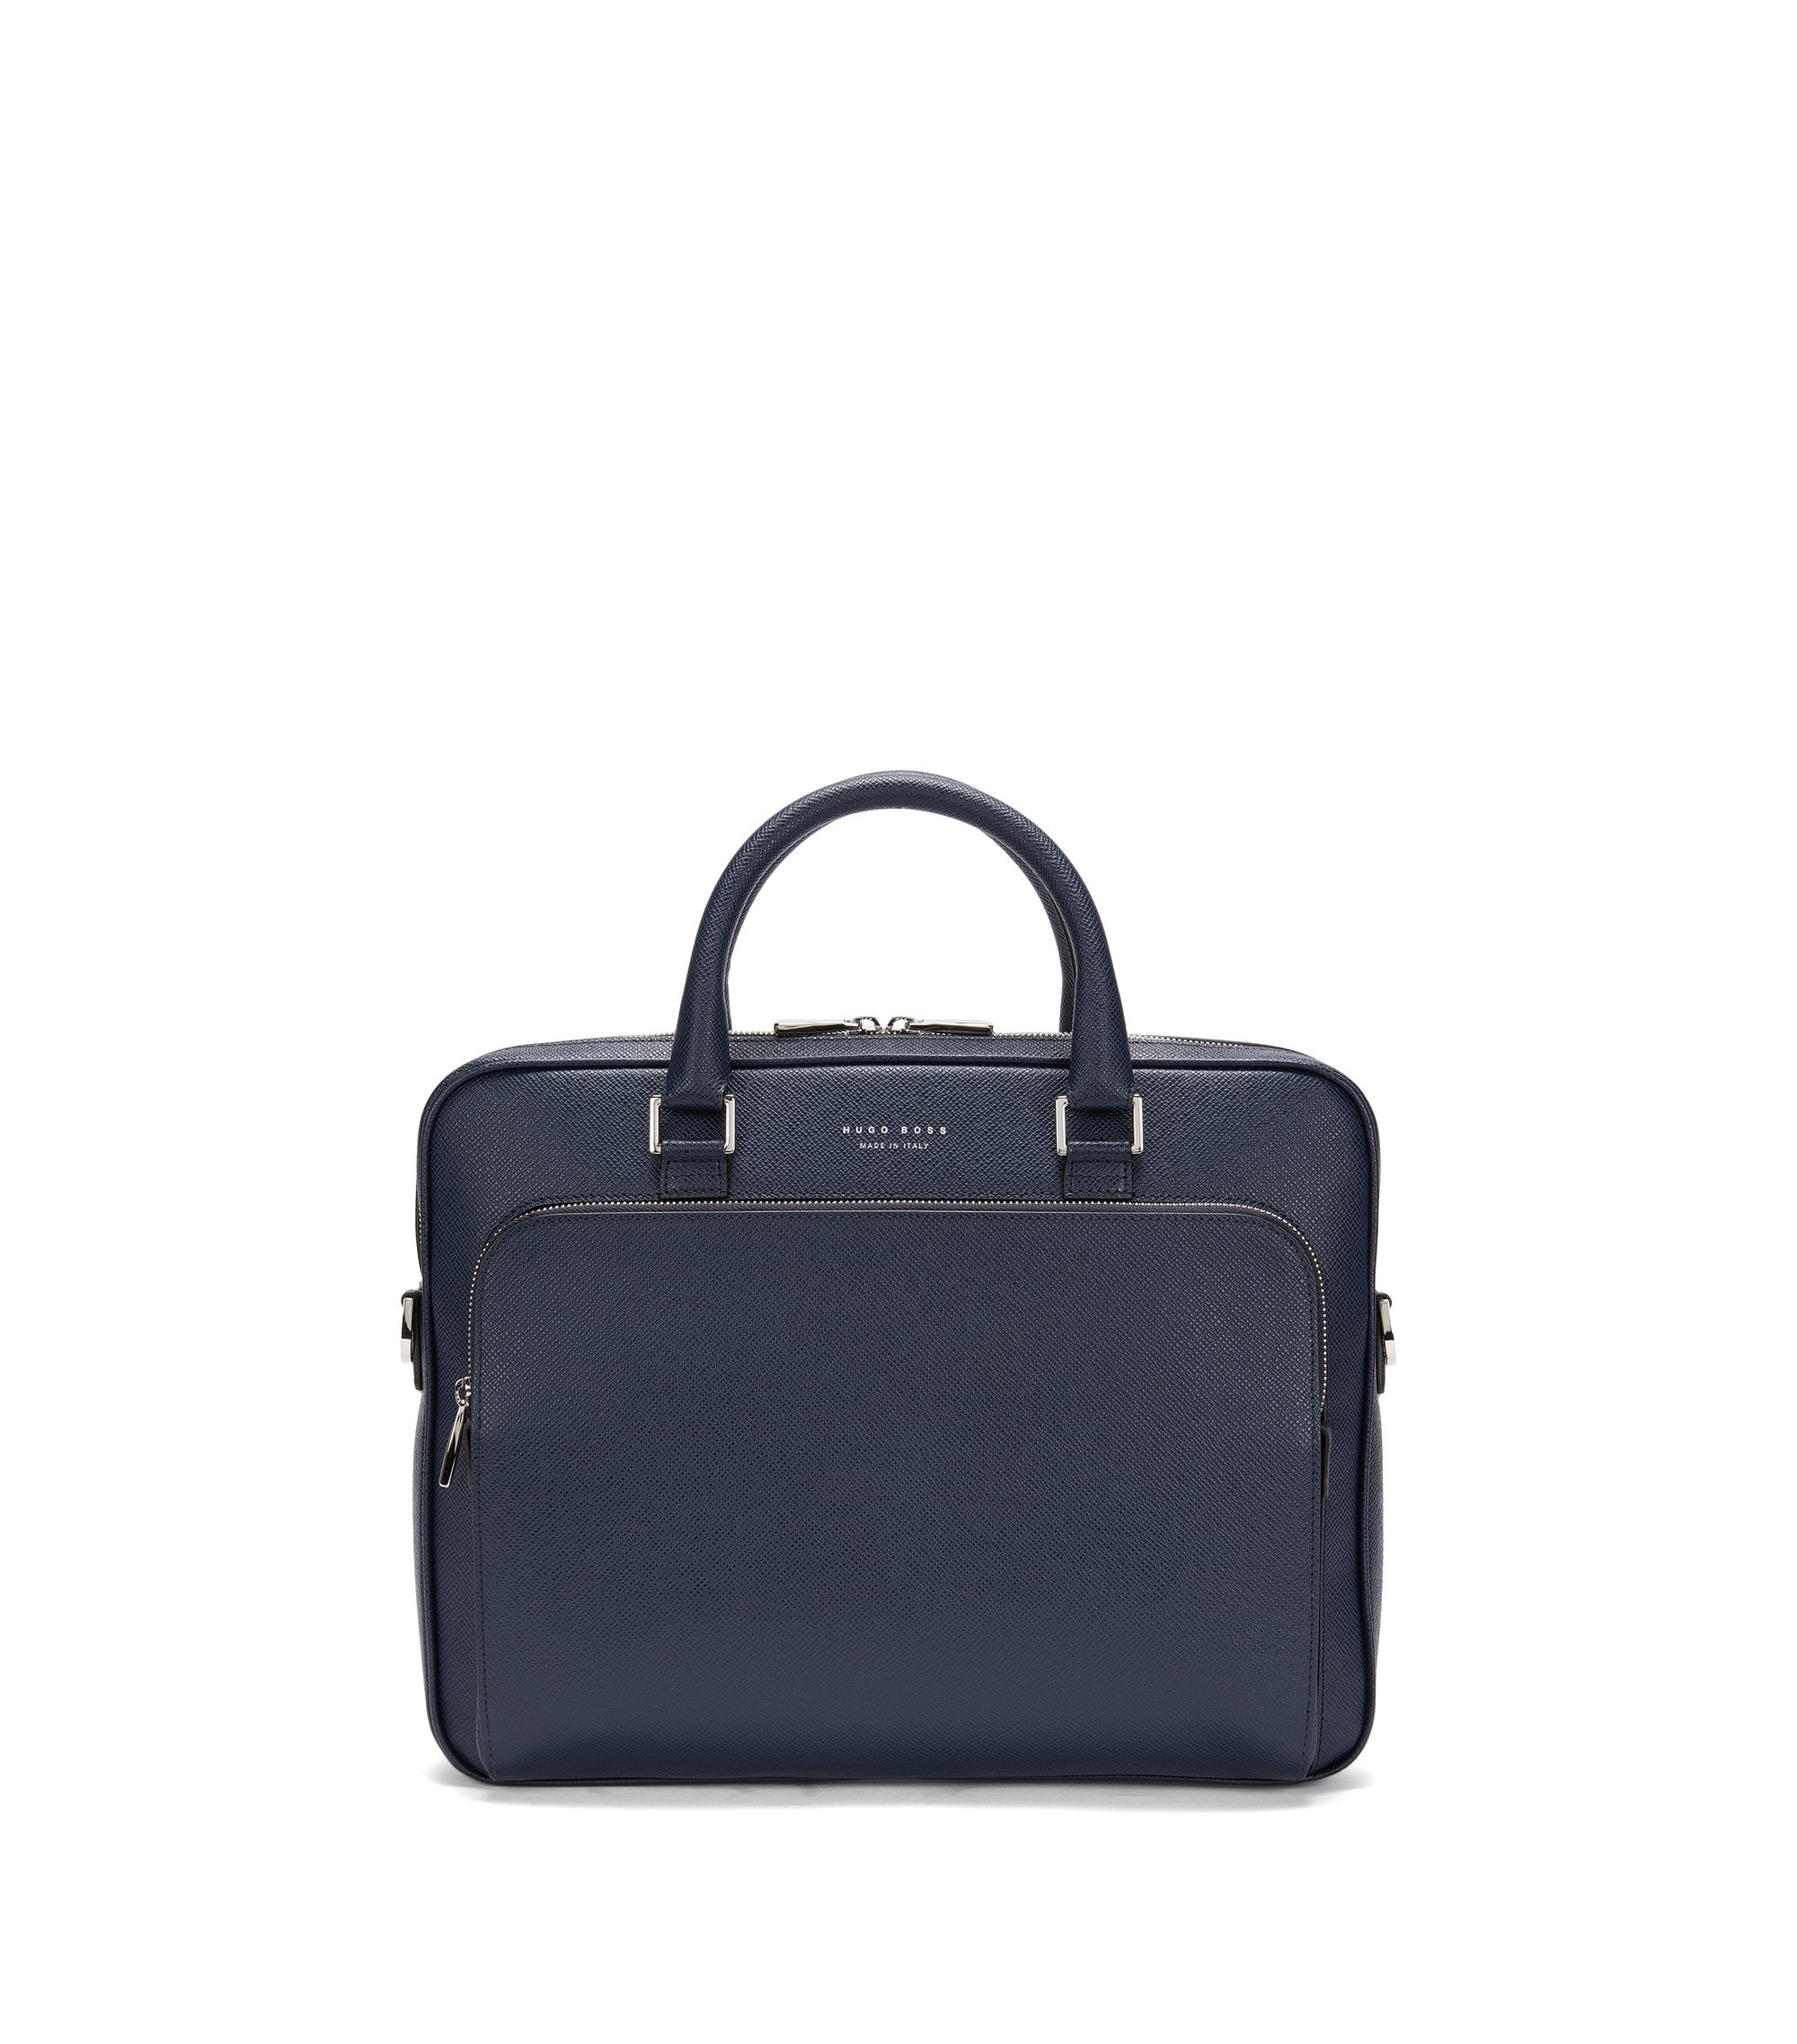 Porte-document BOSS de la collection Signature en cuir palmellato, Bleu foncé